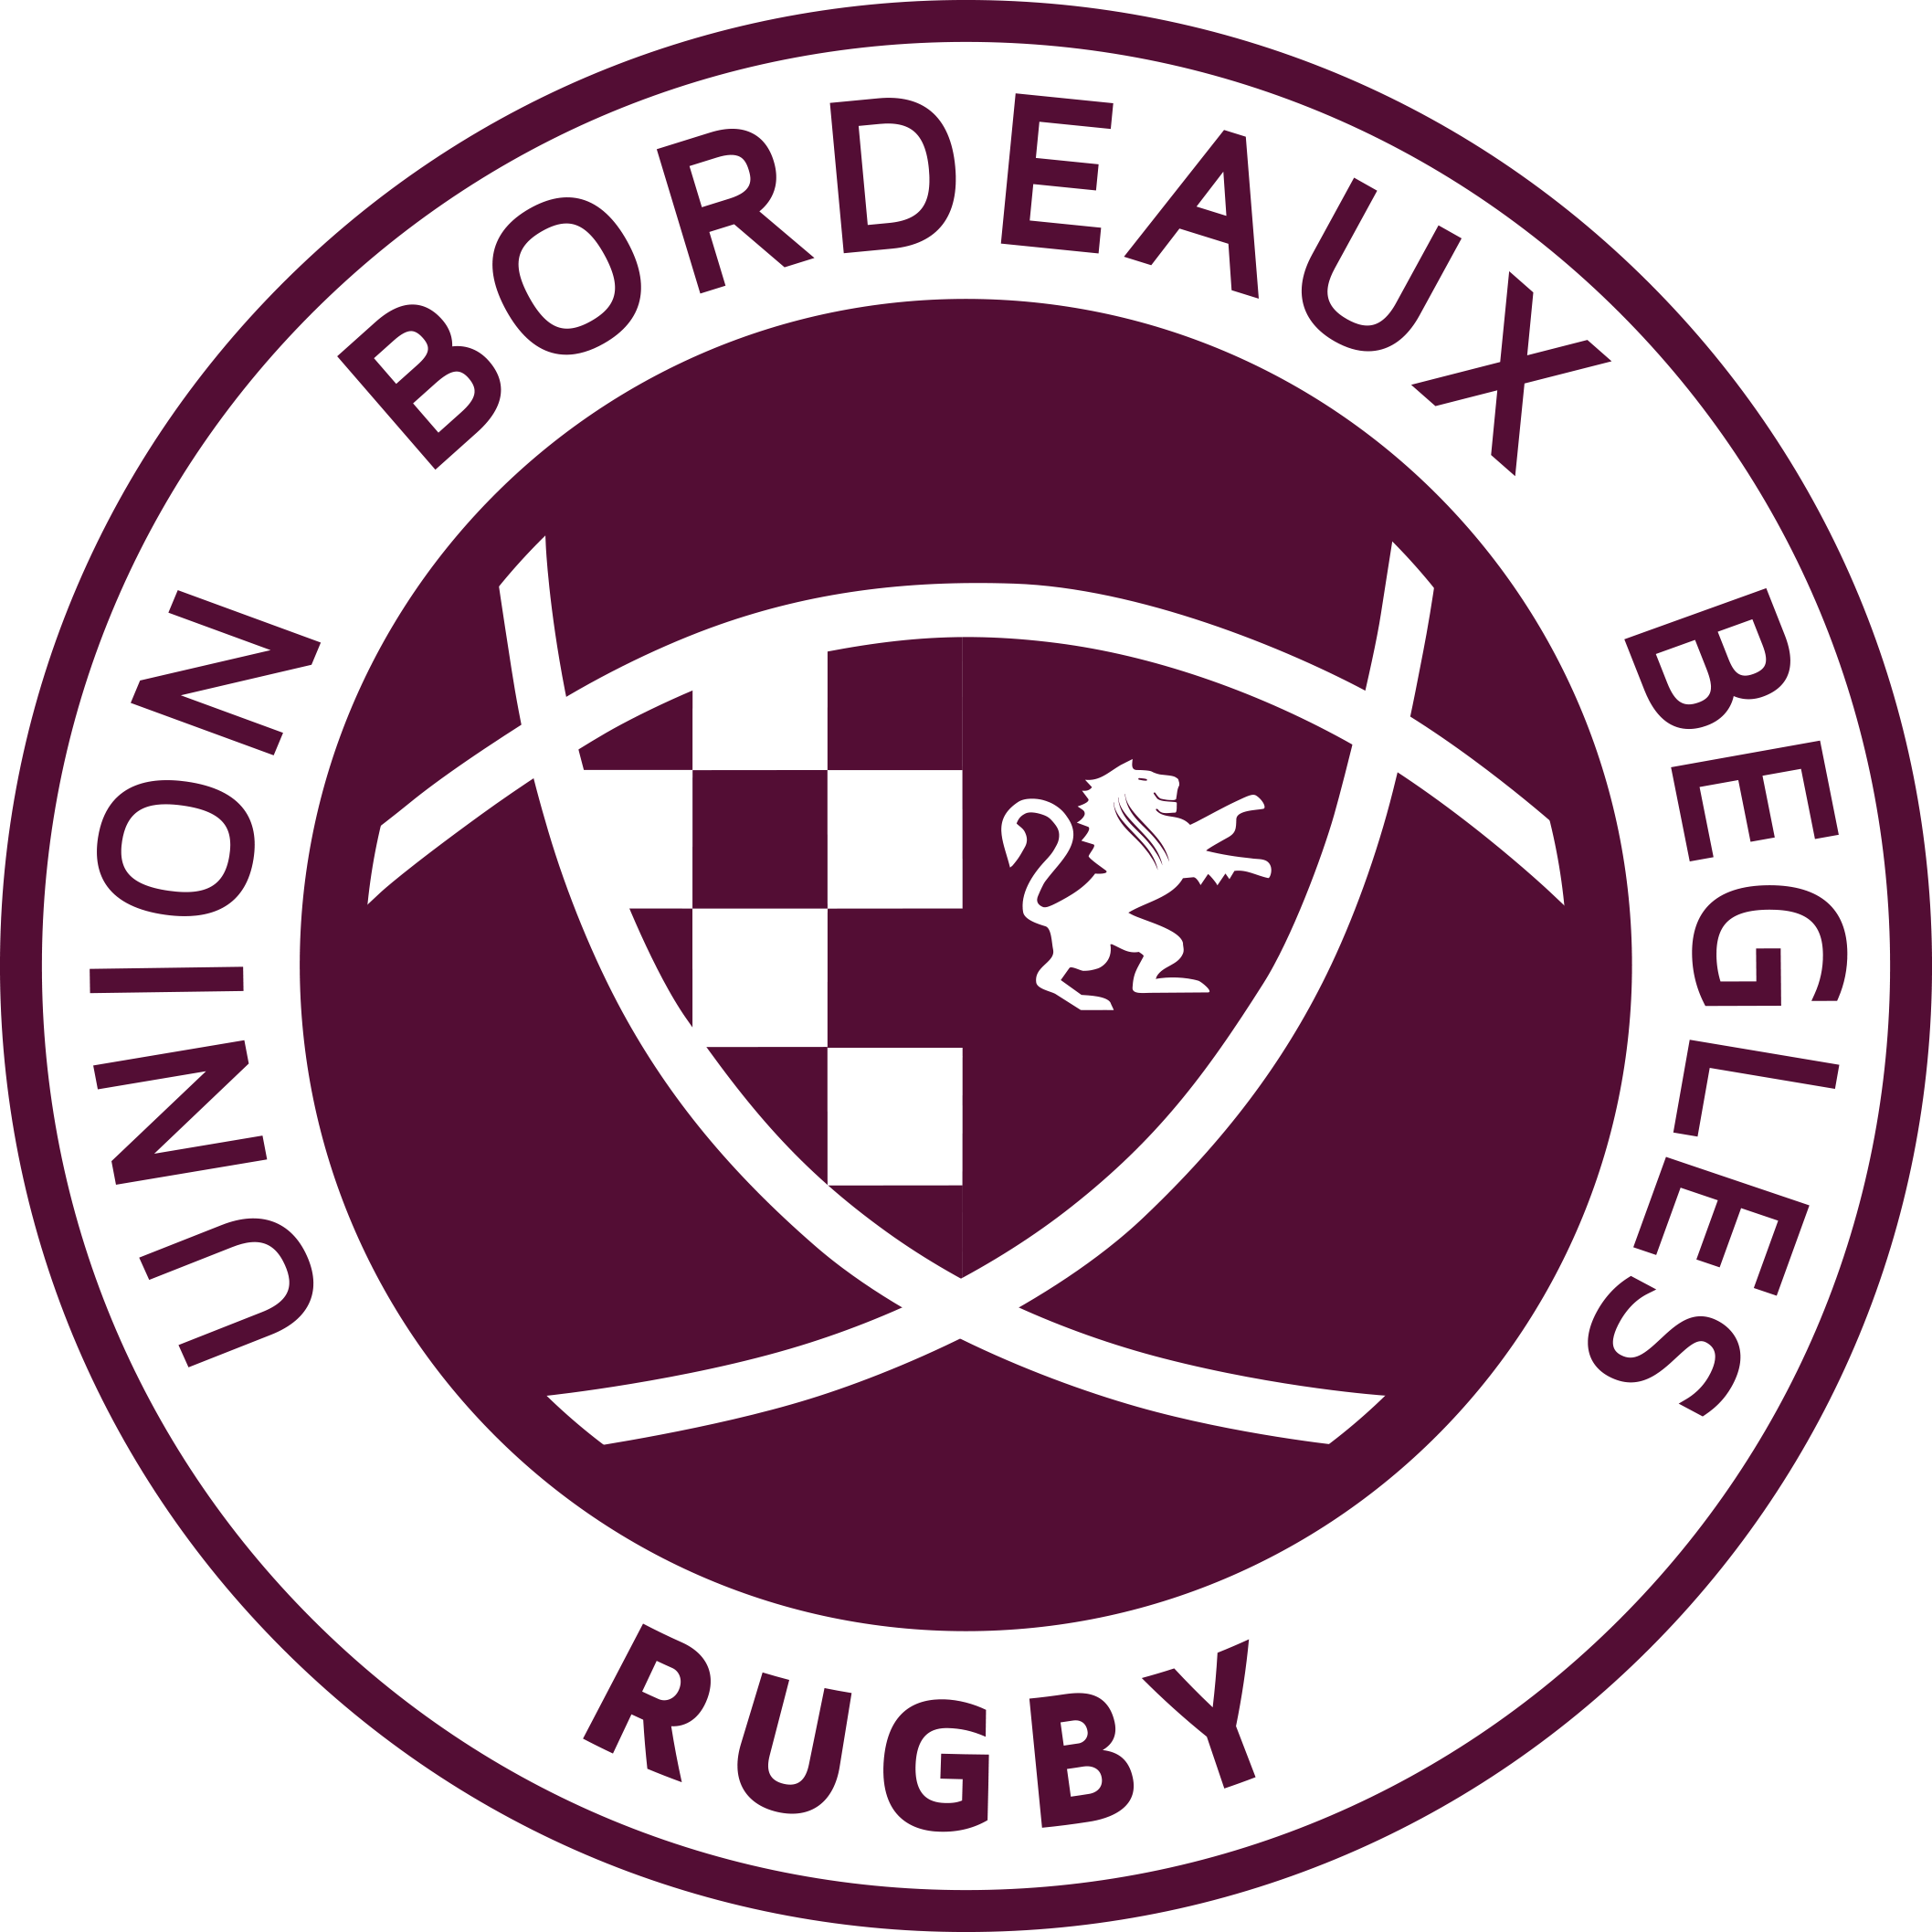 Programme TV UBB Bordeaux